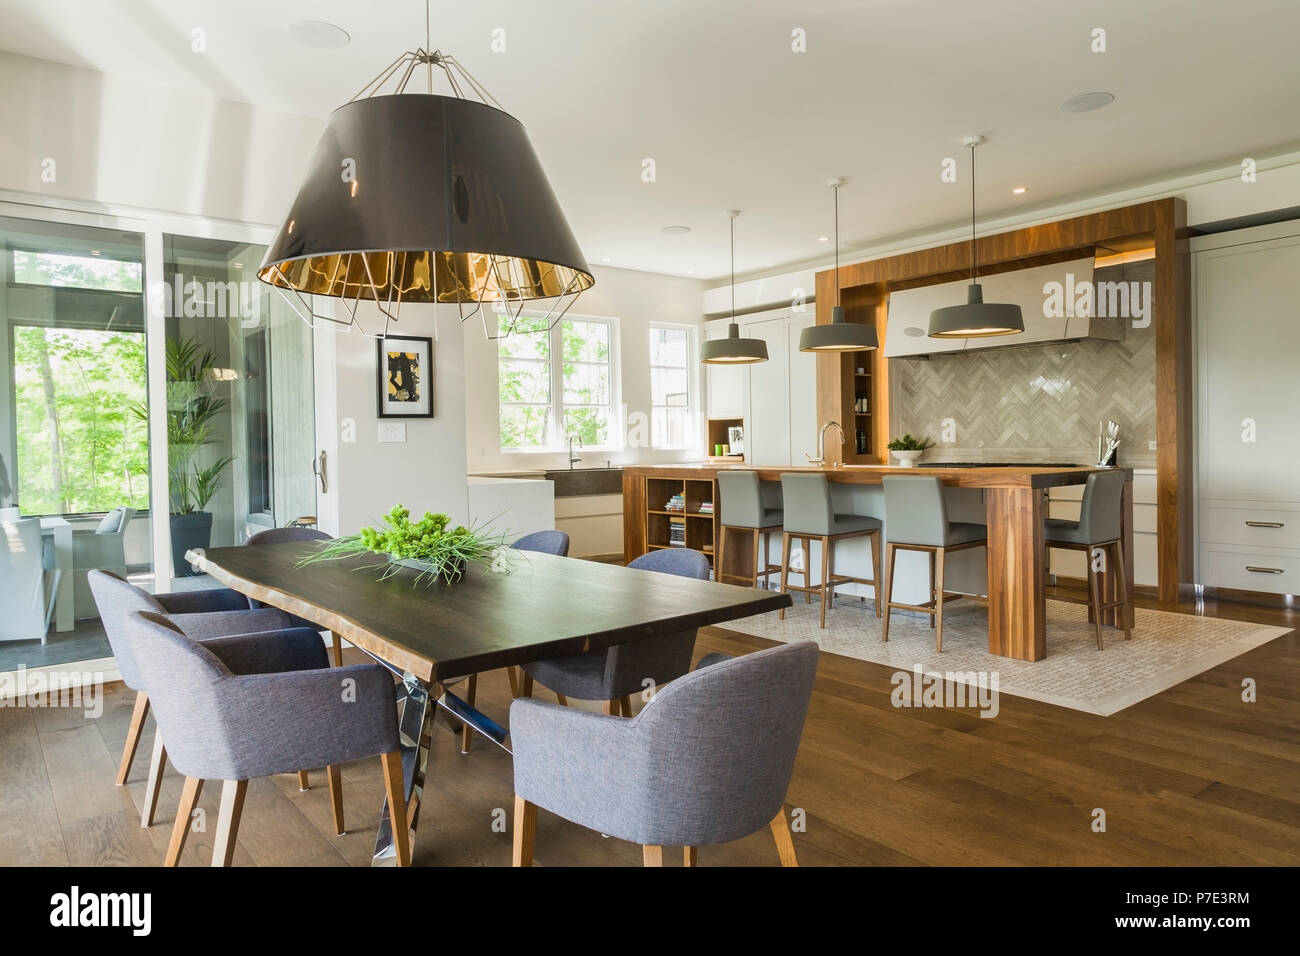 Dining room and kitchen area inside a luxurious contemporary home